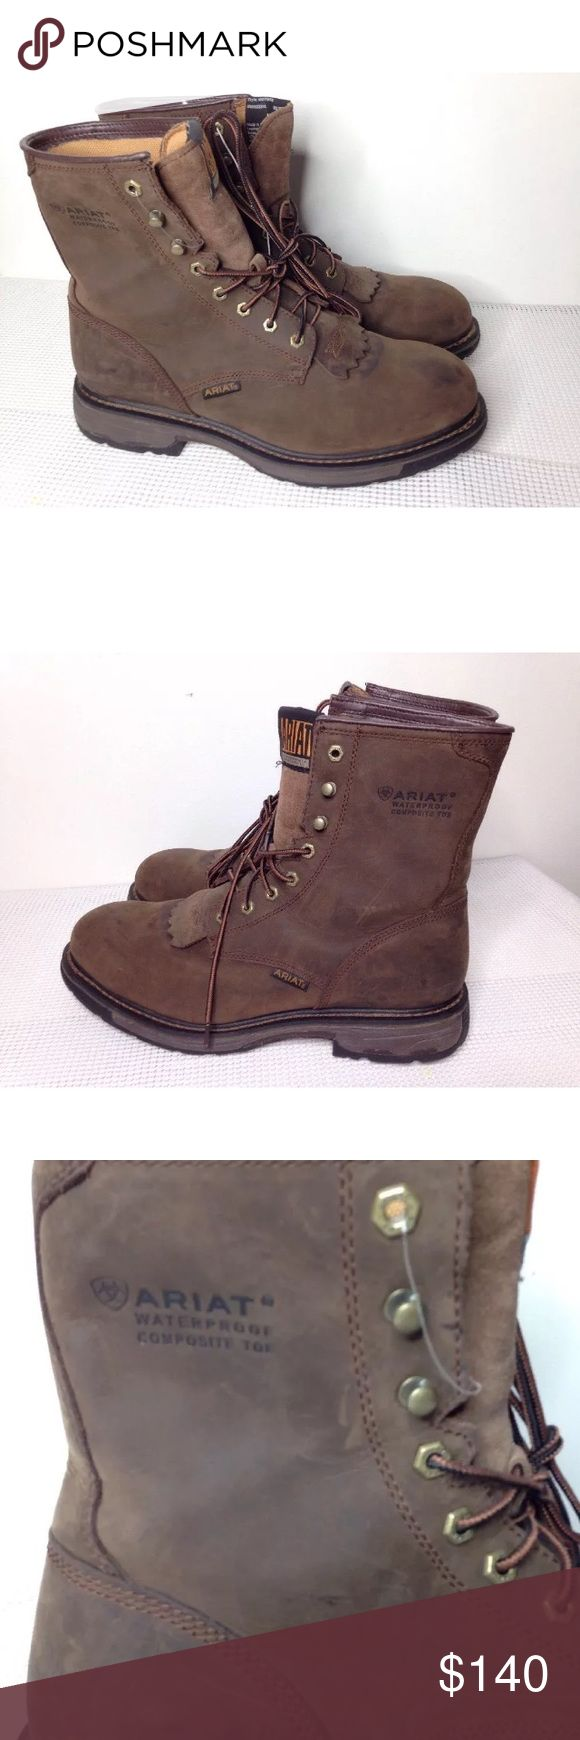 NEW Men's Ariat Brown  Work Boots 13 Extra Wide EE Ariat work boots sz 13  EE. No box. Ariat Shoes Cowboy & Western Boots